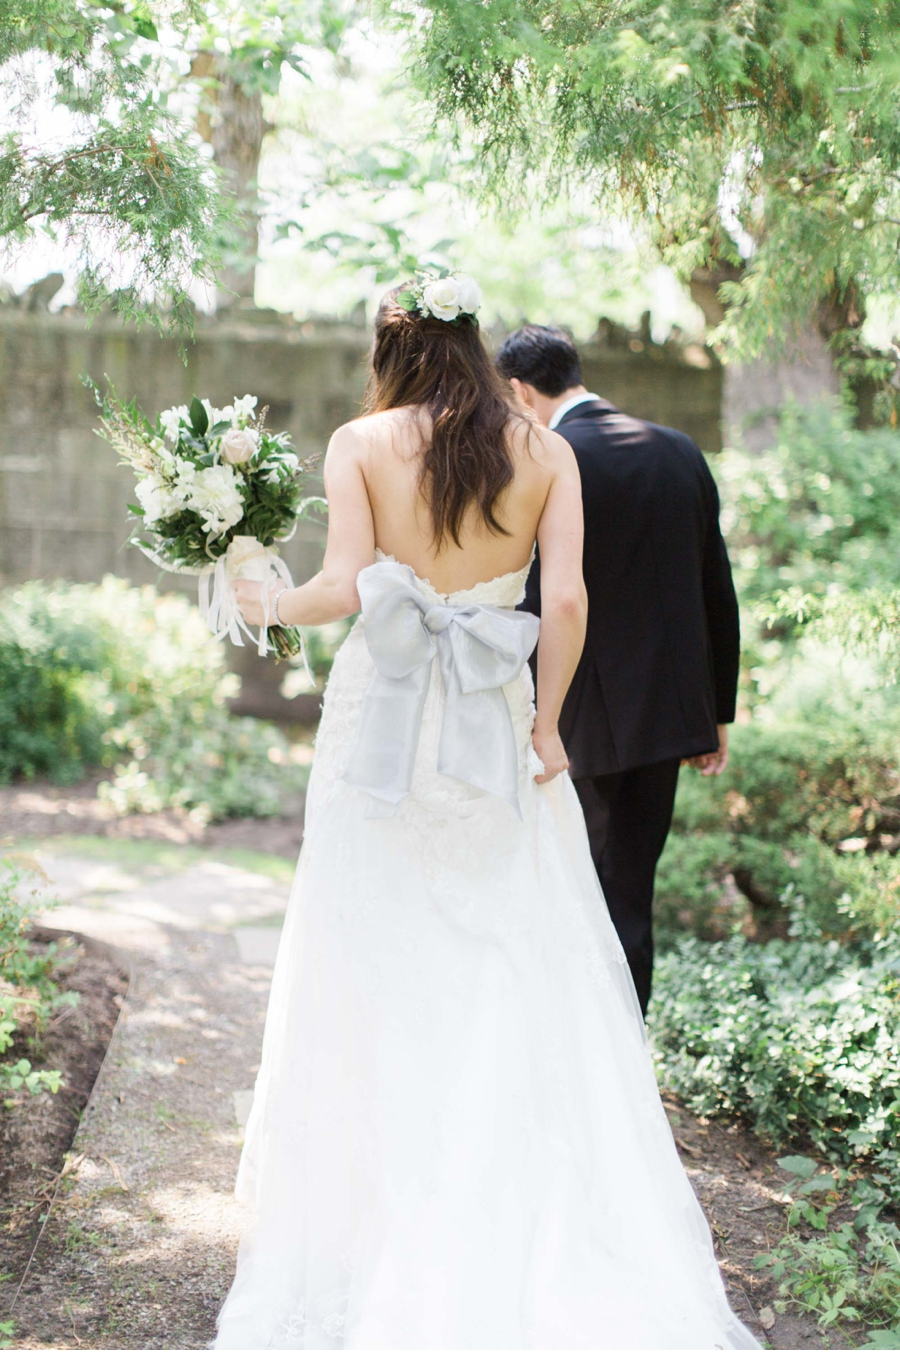 Brides-Gown-with-Blue-Bow